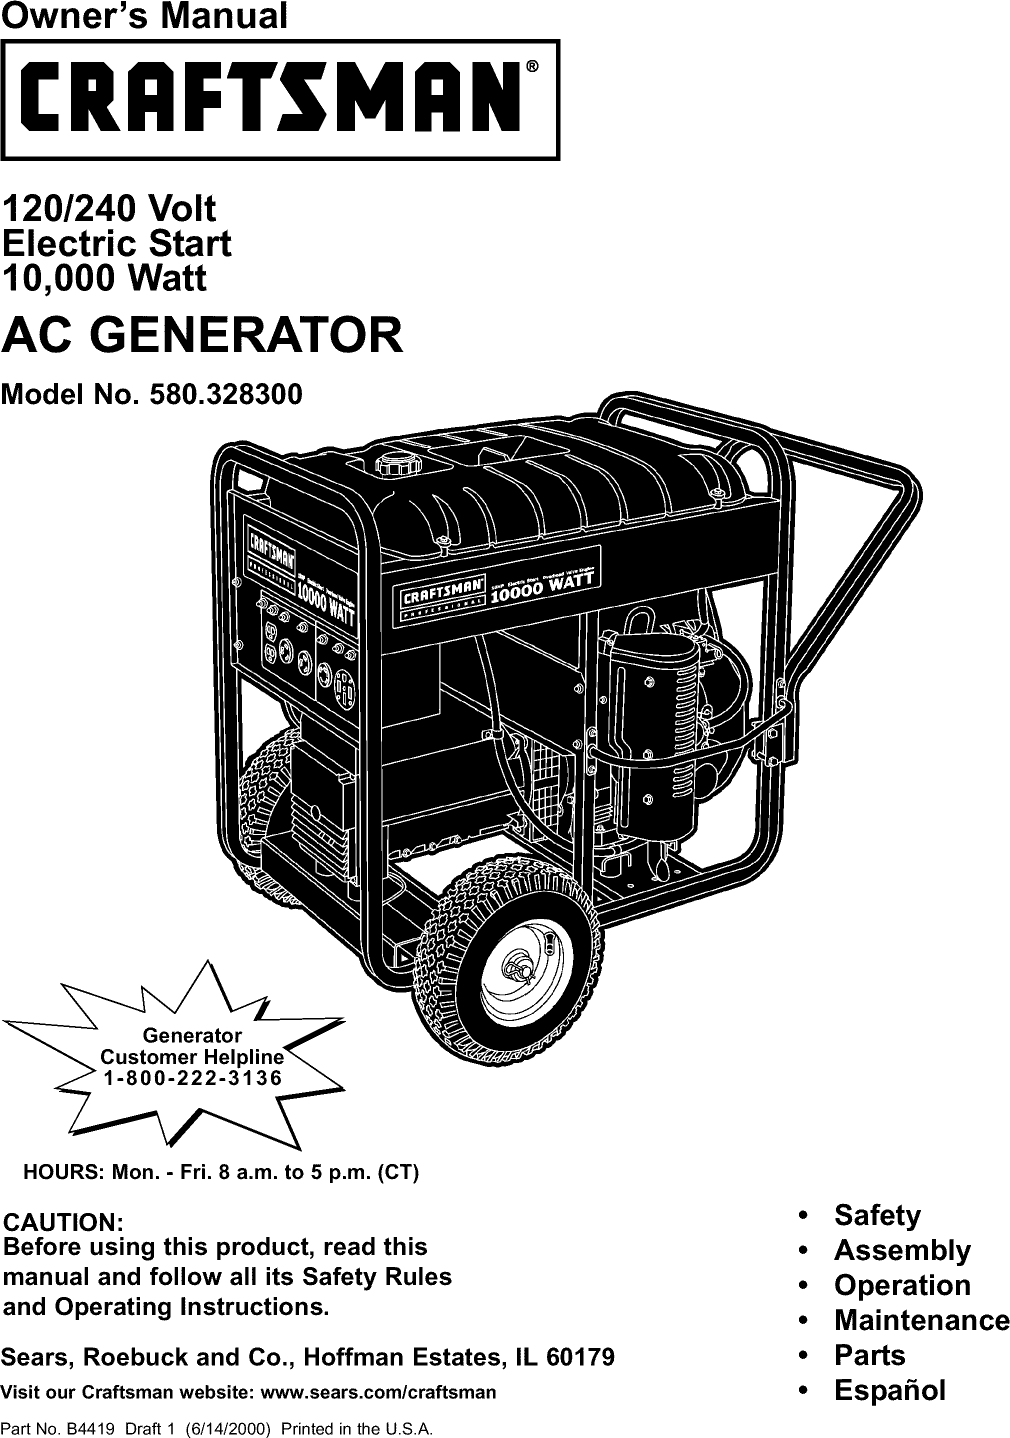 Craftsman 580328300 User Manual AC GENERATOR Manuals And